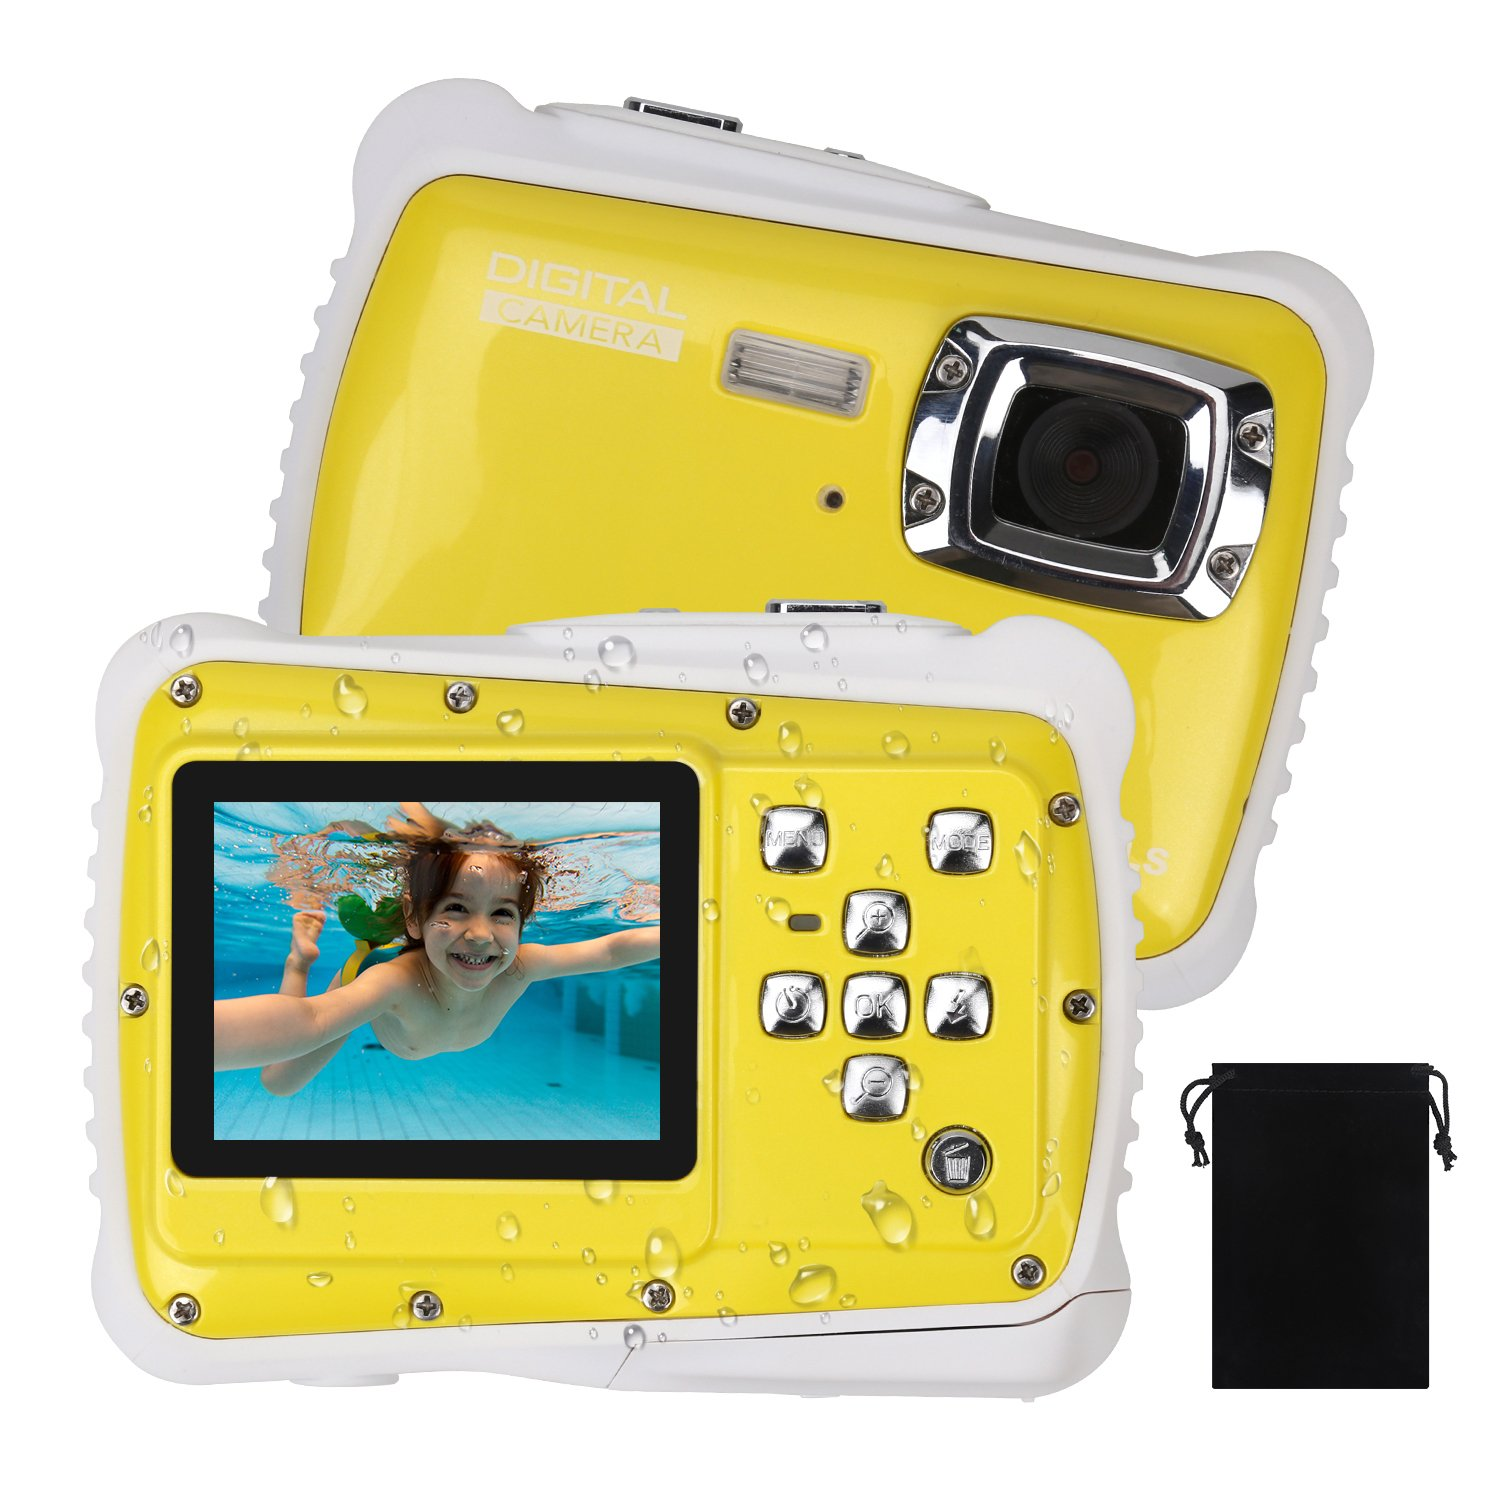 Waterproof Camera for Kids, DECOMEN Underwater Digital Camera for Children, Sport Action Camcorder with 12MP HD Photo Resolution, 2.0'' LCD, 8X Digital Zoom, Flash, and Mic, Best Gift Choice for Kids.